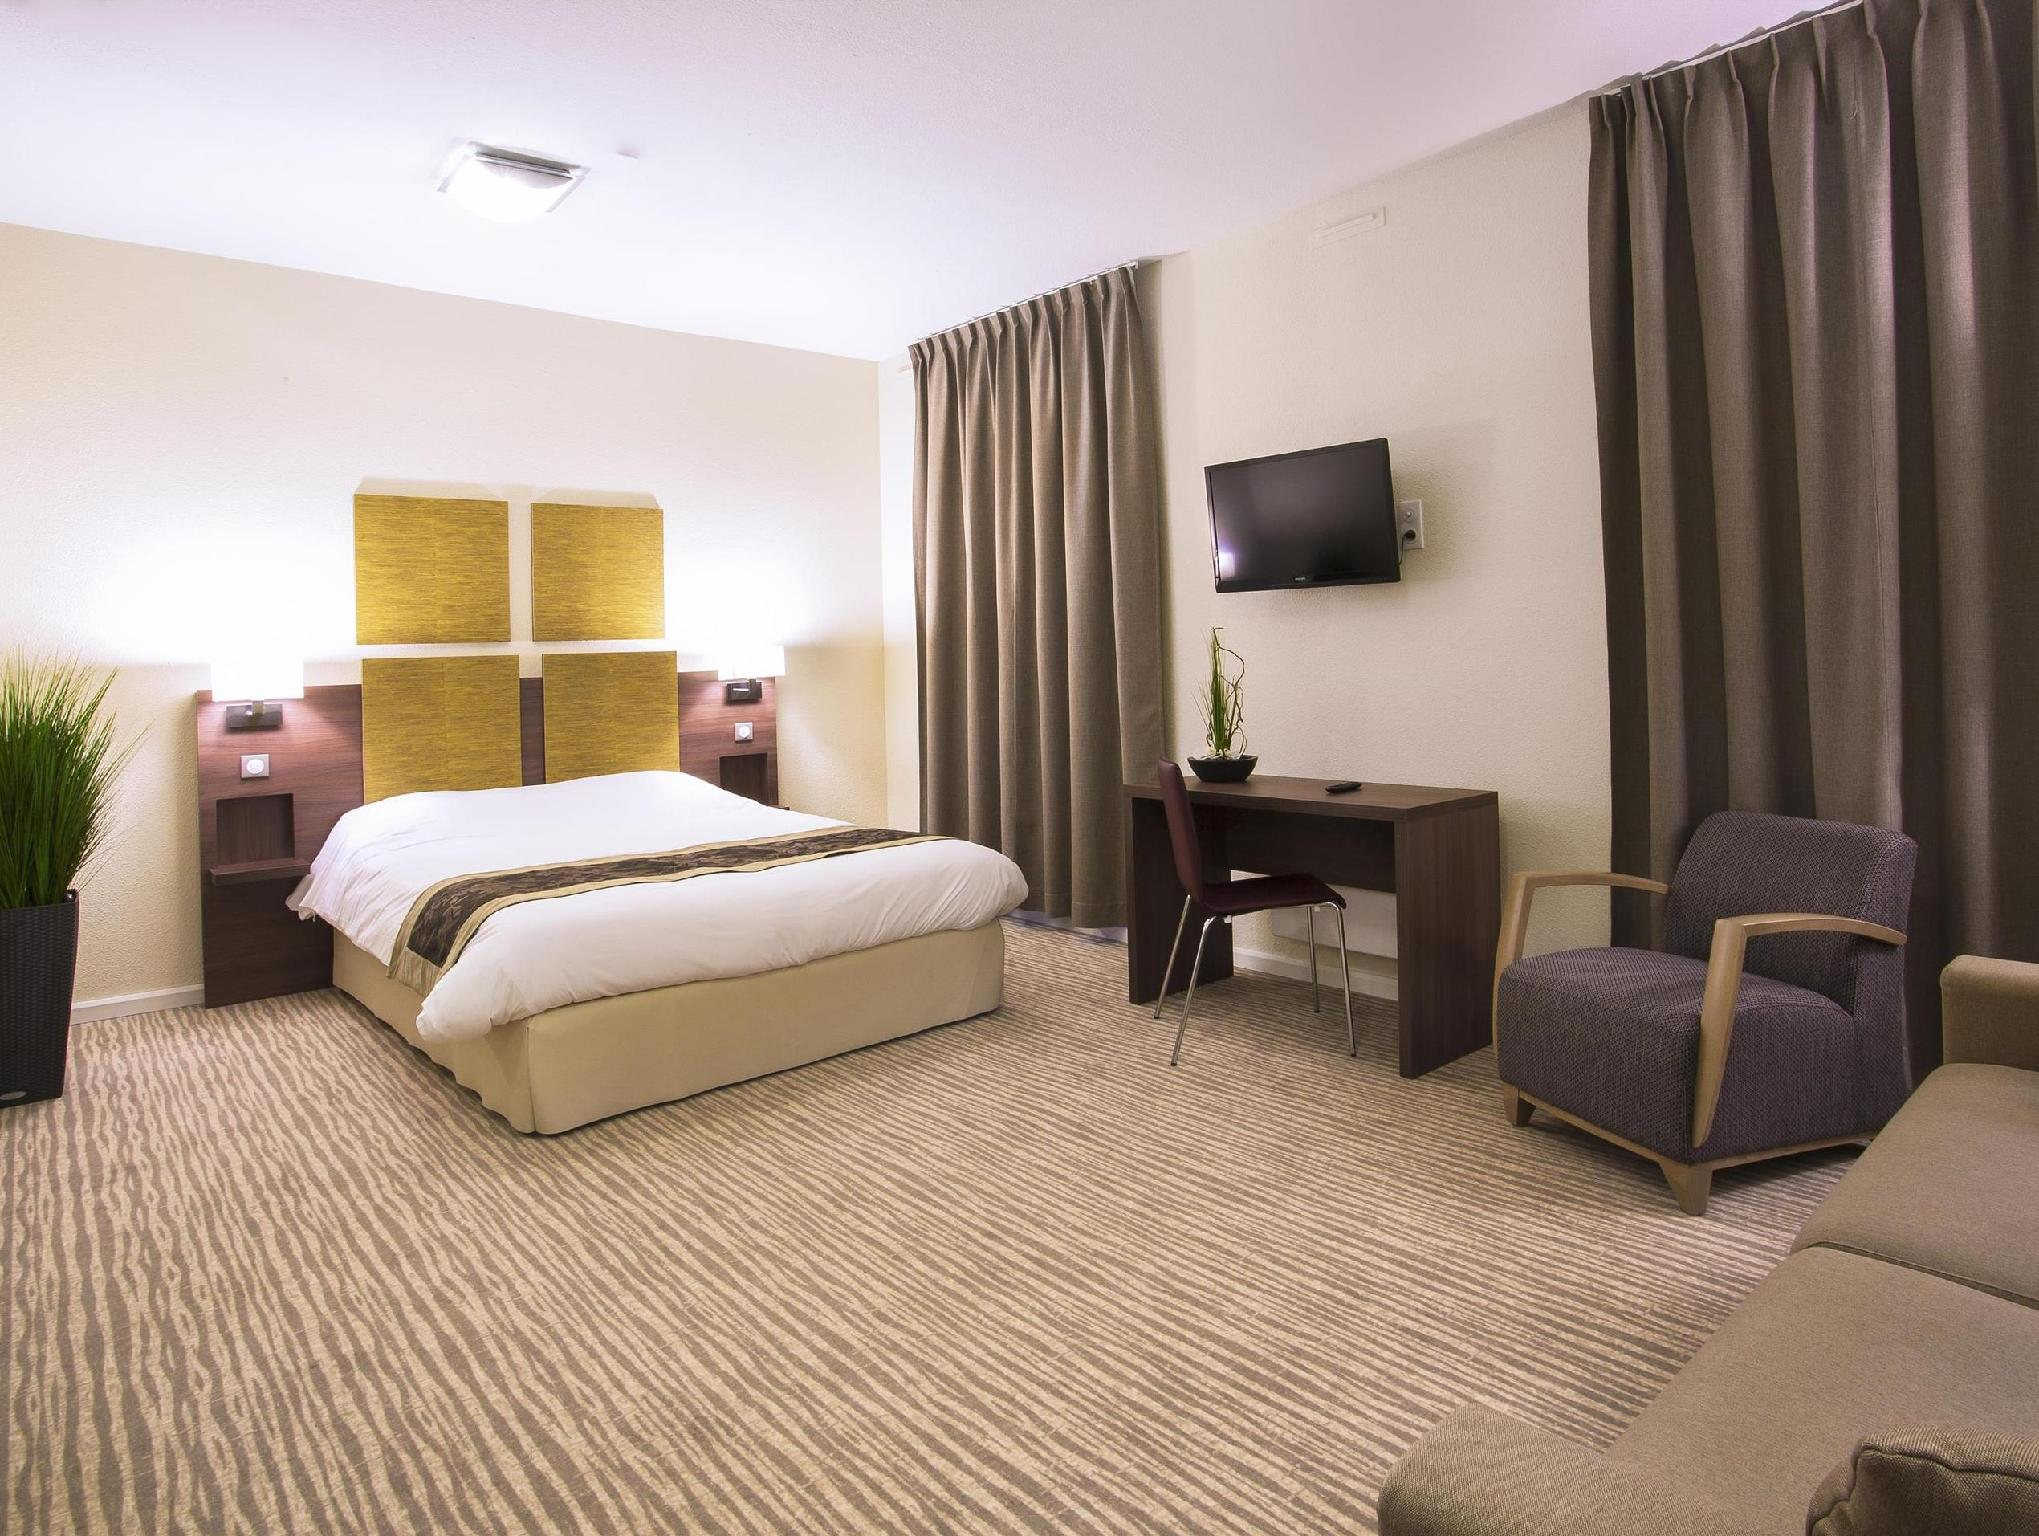 Superior Room (1 Adult)